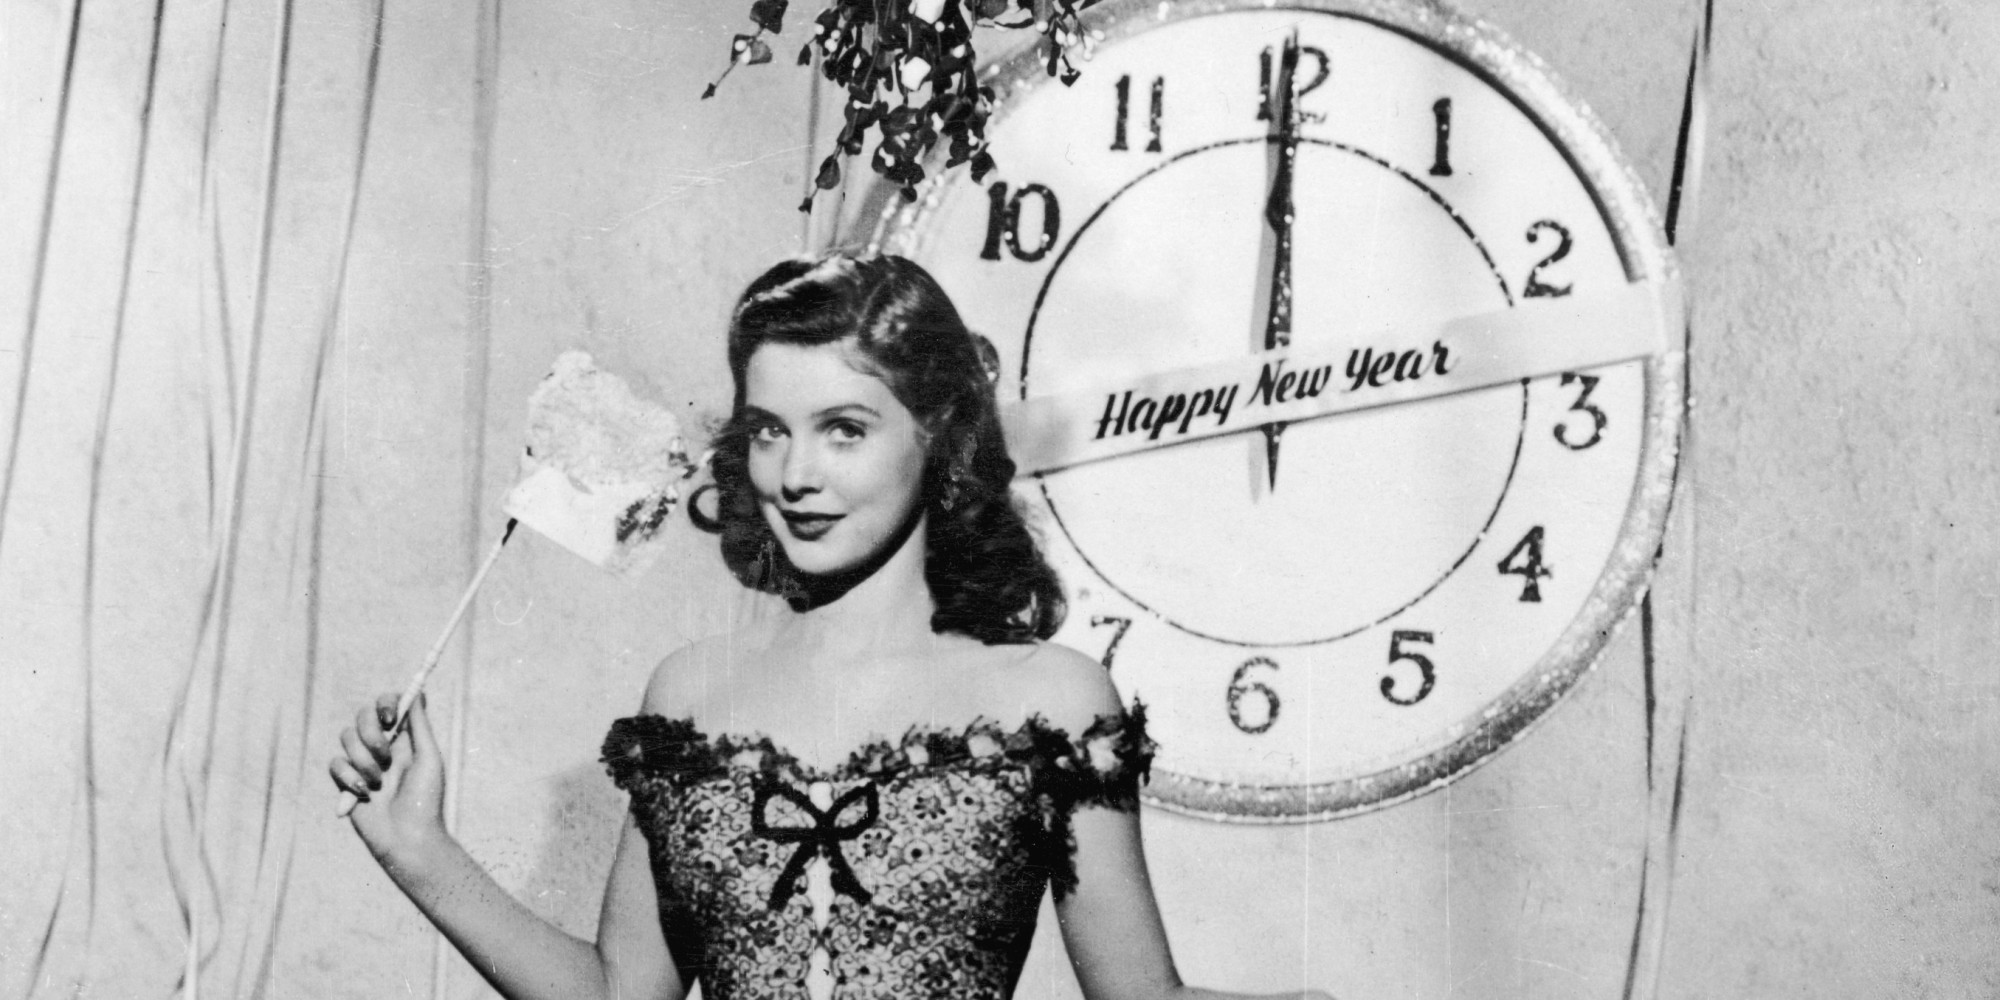 October 1950:  American model Joan Vohs poses for a new year greetings card.  (Photo by Keystone/Getty Images)